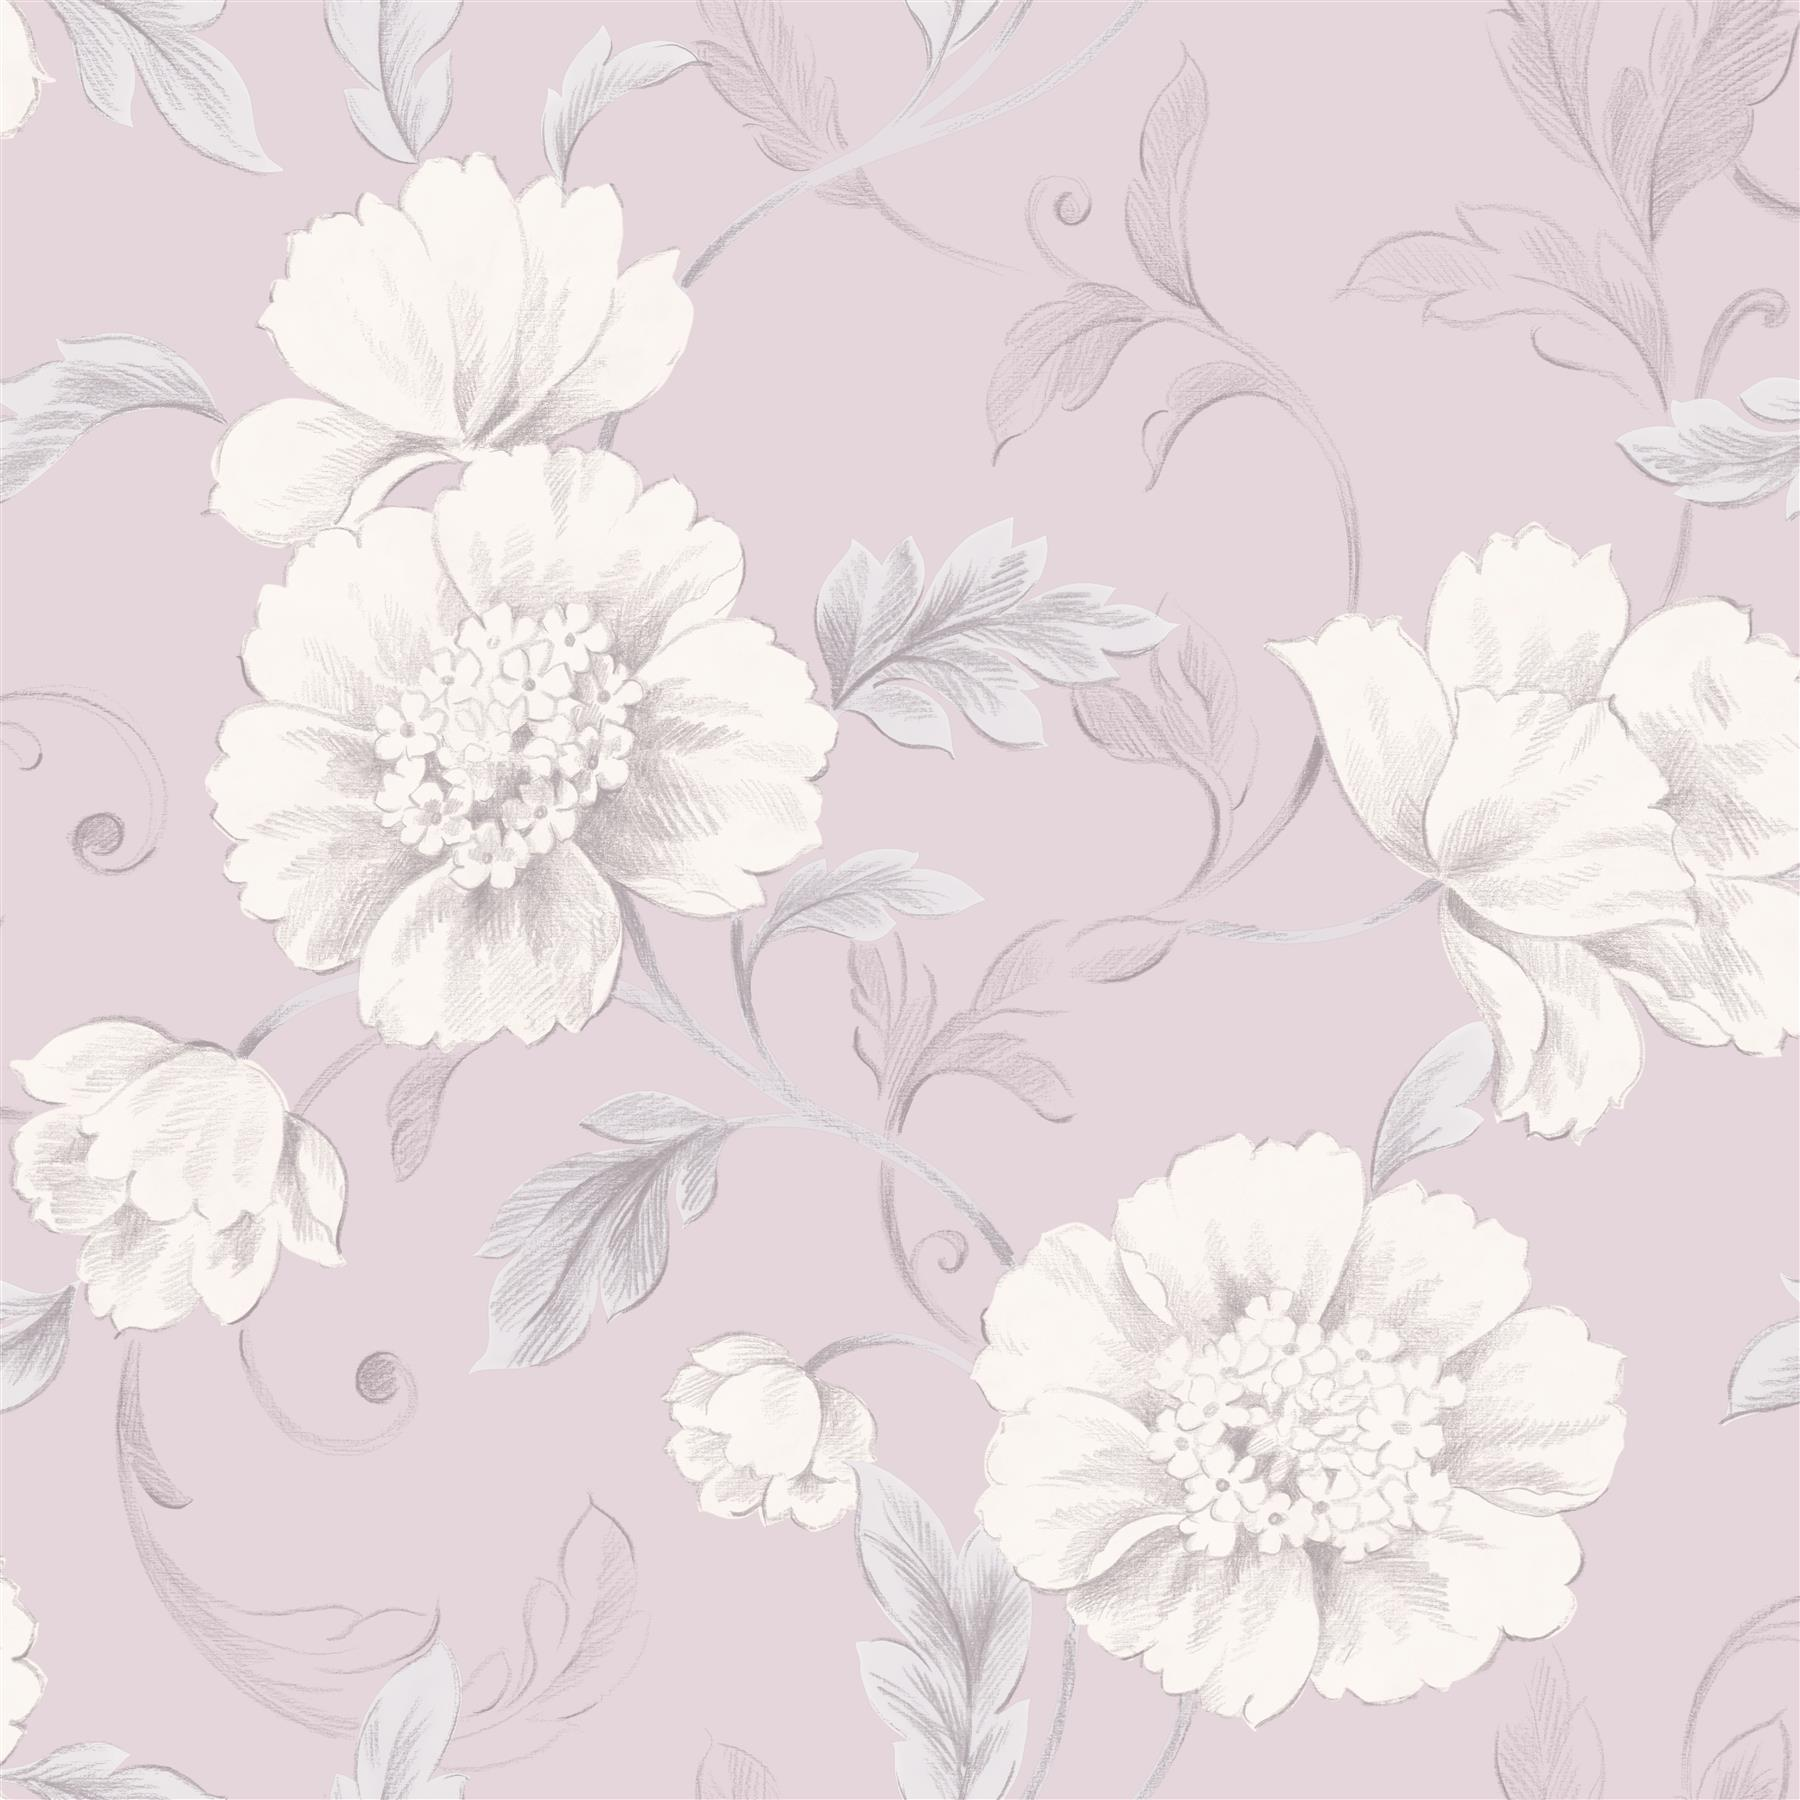 Stunning-Assorted-Floral-Roses-Leaves-10m-Wallpaper thumbnail 22